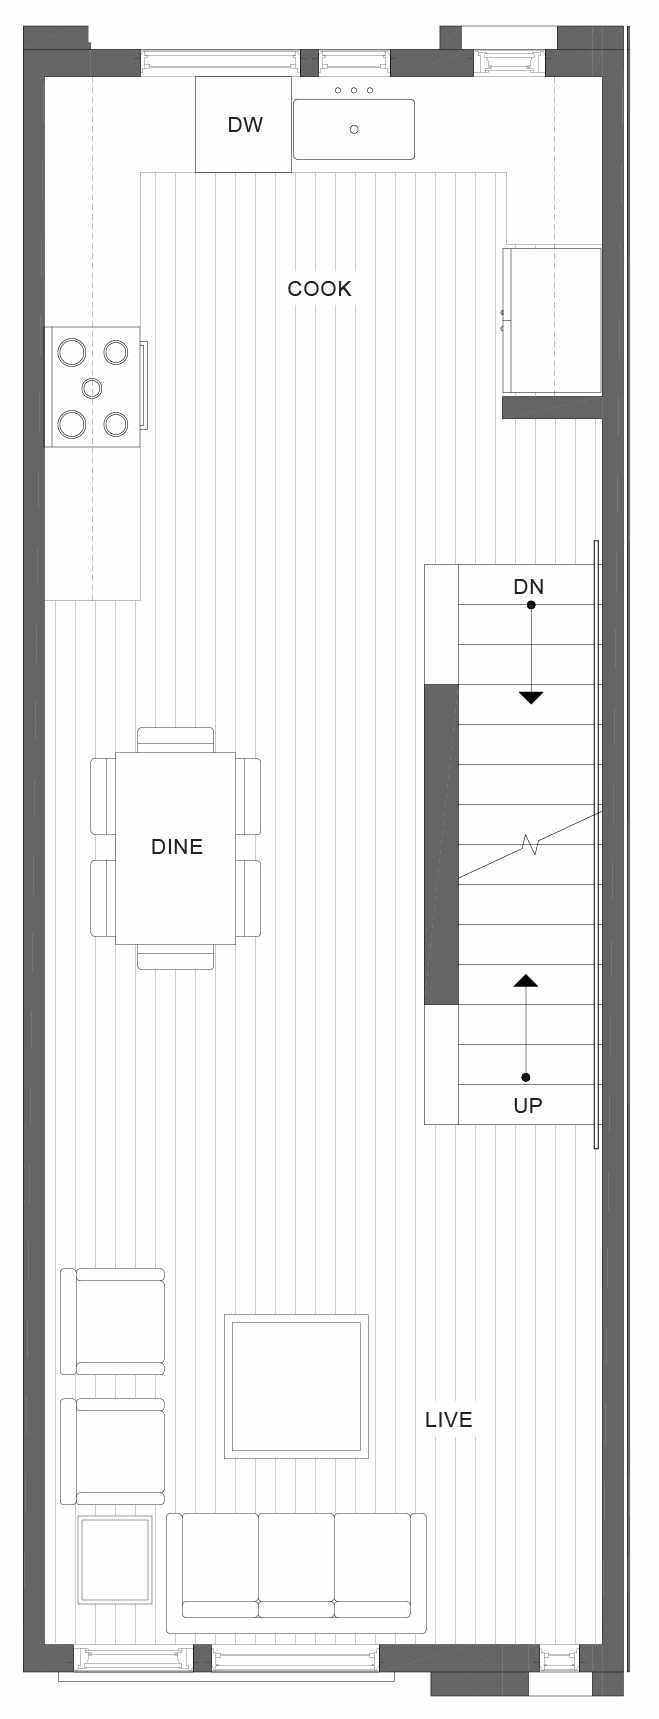 Second Floor Plan of 1105D 14th Ave in the Corazon Central Townhomes